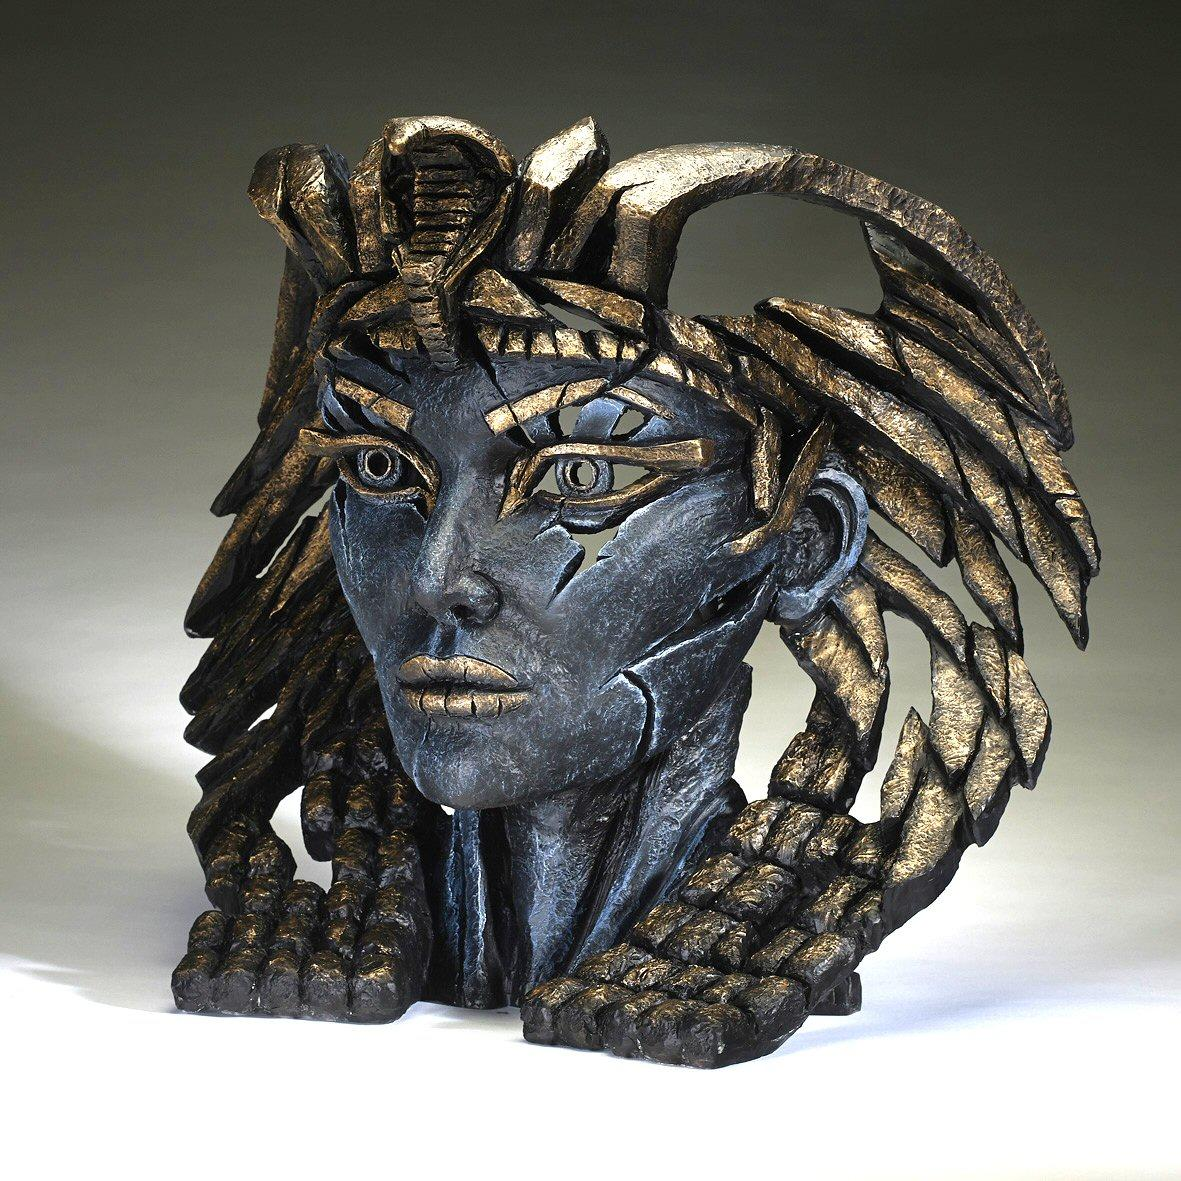 Cleopatra Bust - Blue and Gold EDB06 EDGE by Matt Buckley